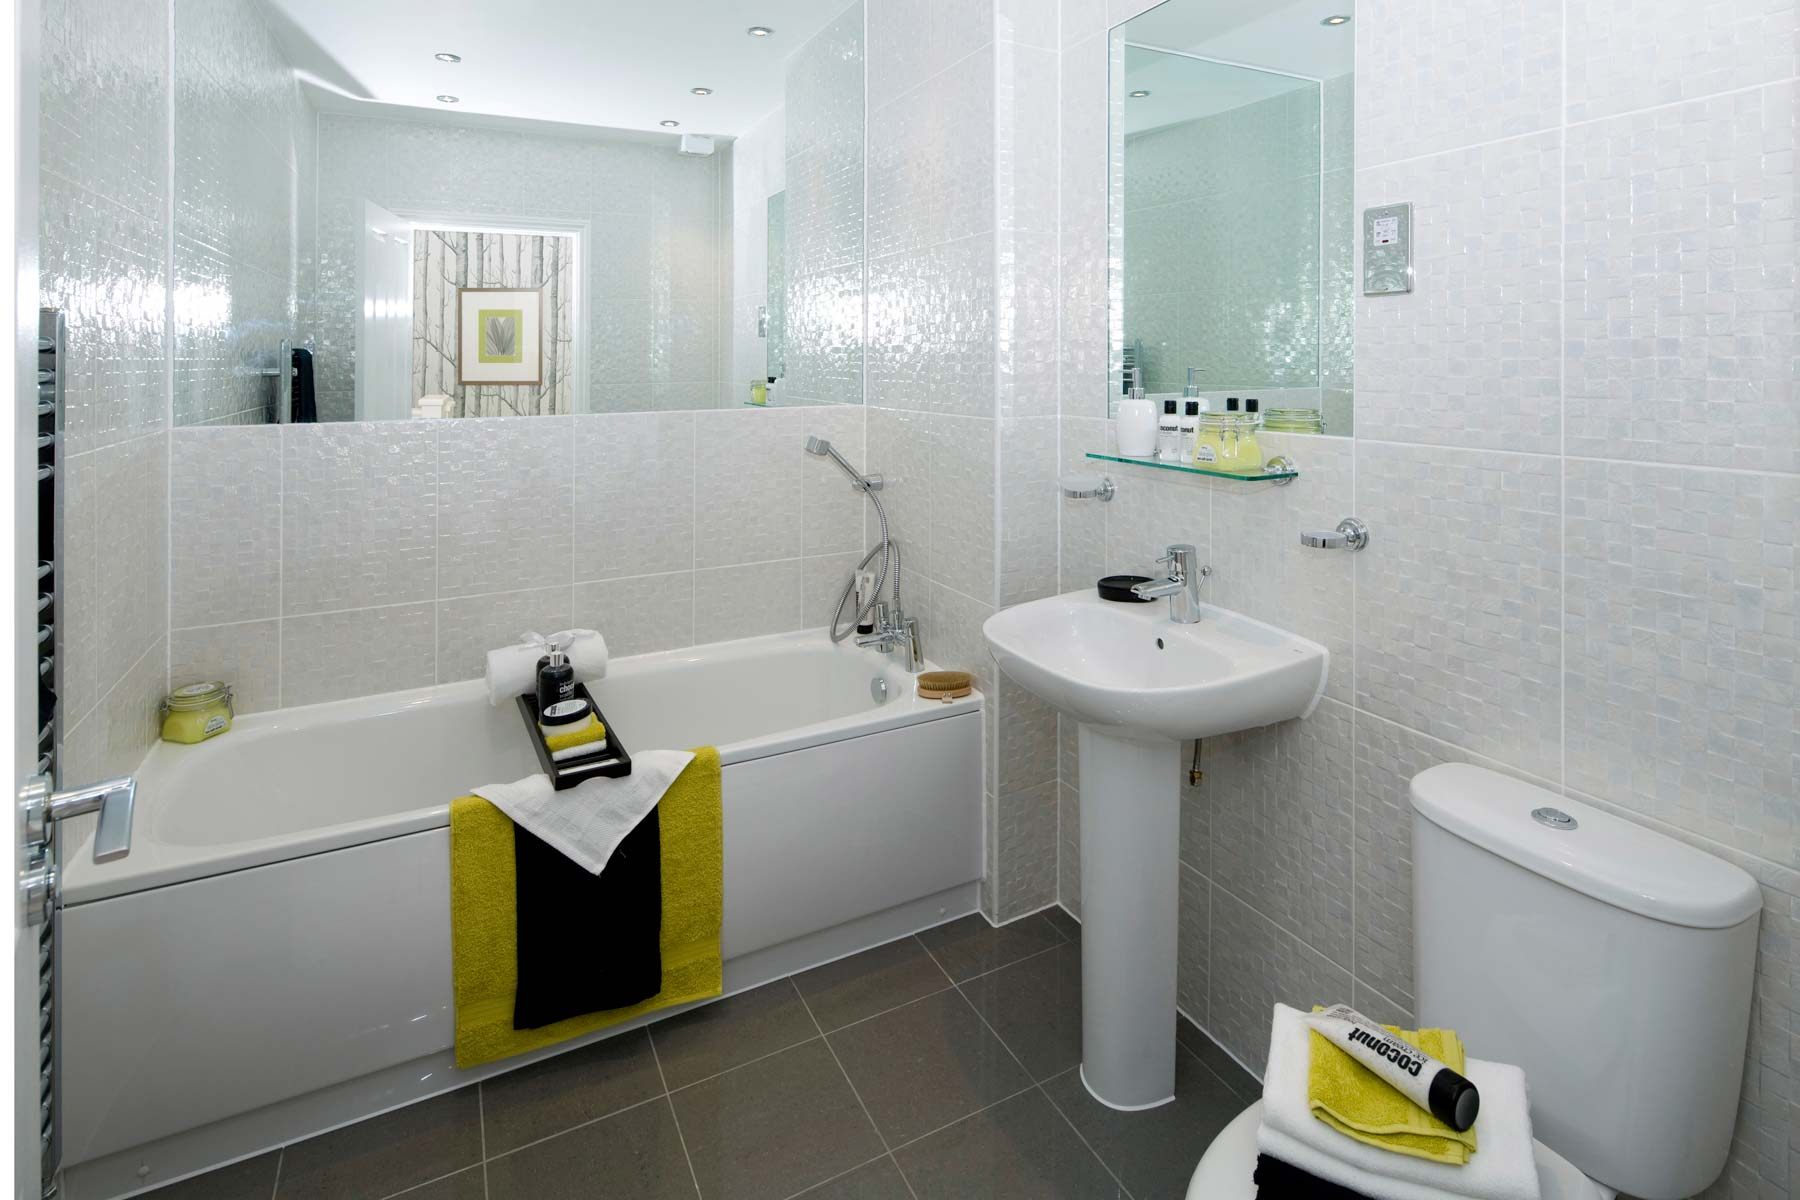 A Typical Taylor Wimpey Show Apartment Bathroom